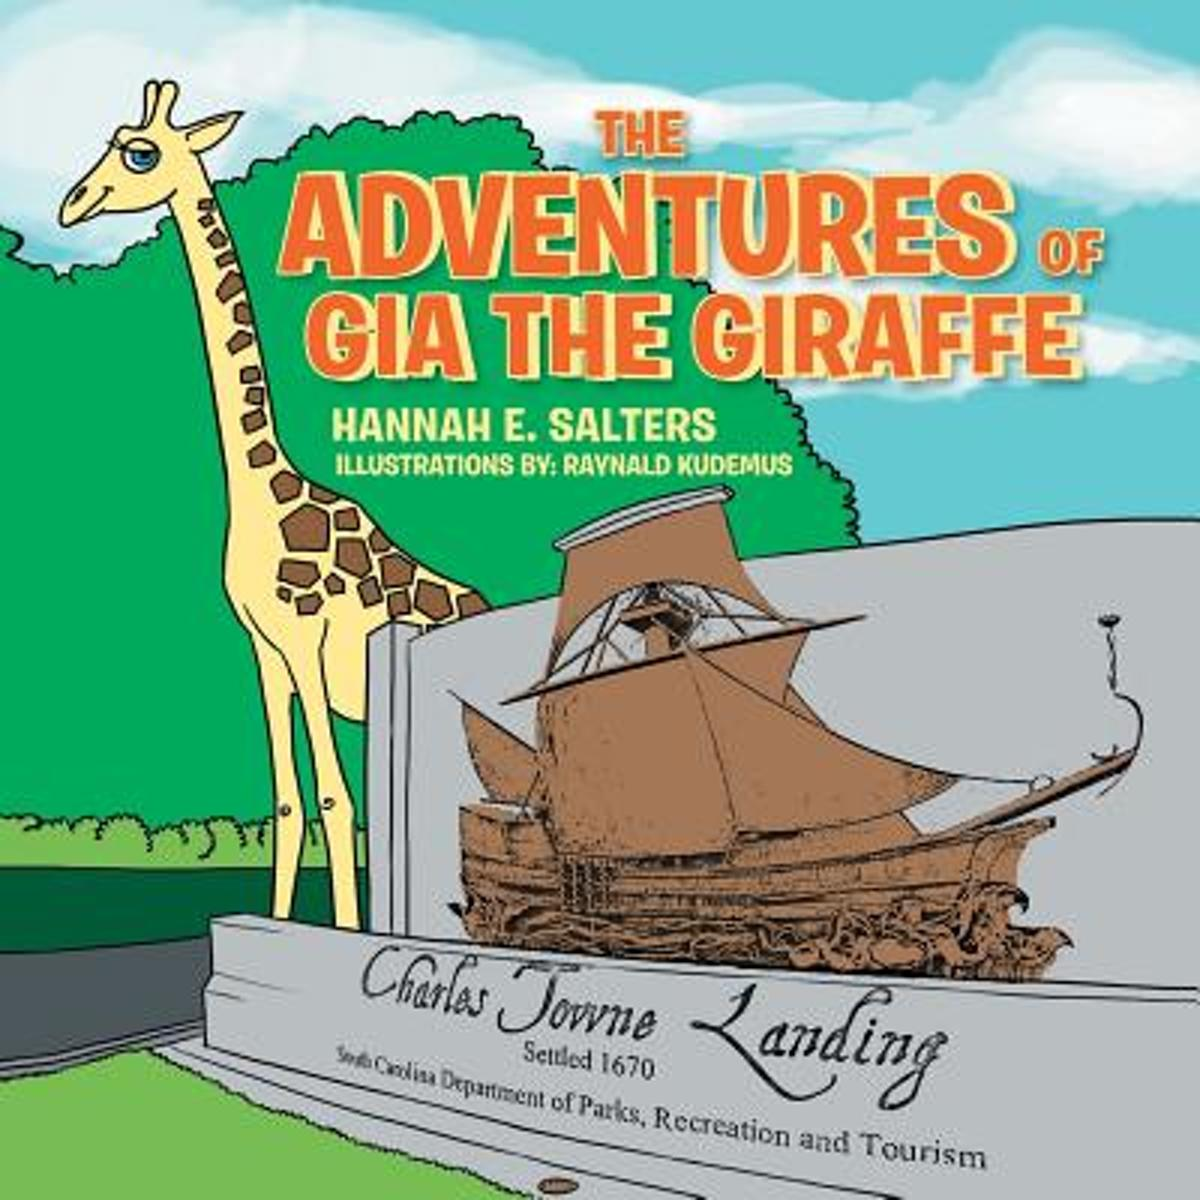 The Adventures of Gia the Giraffe